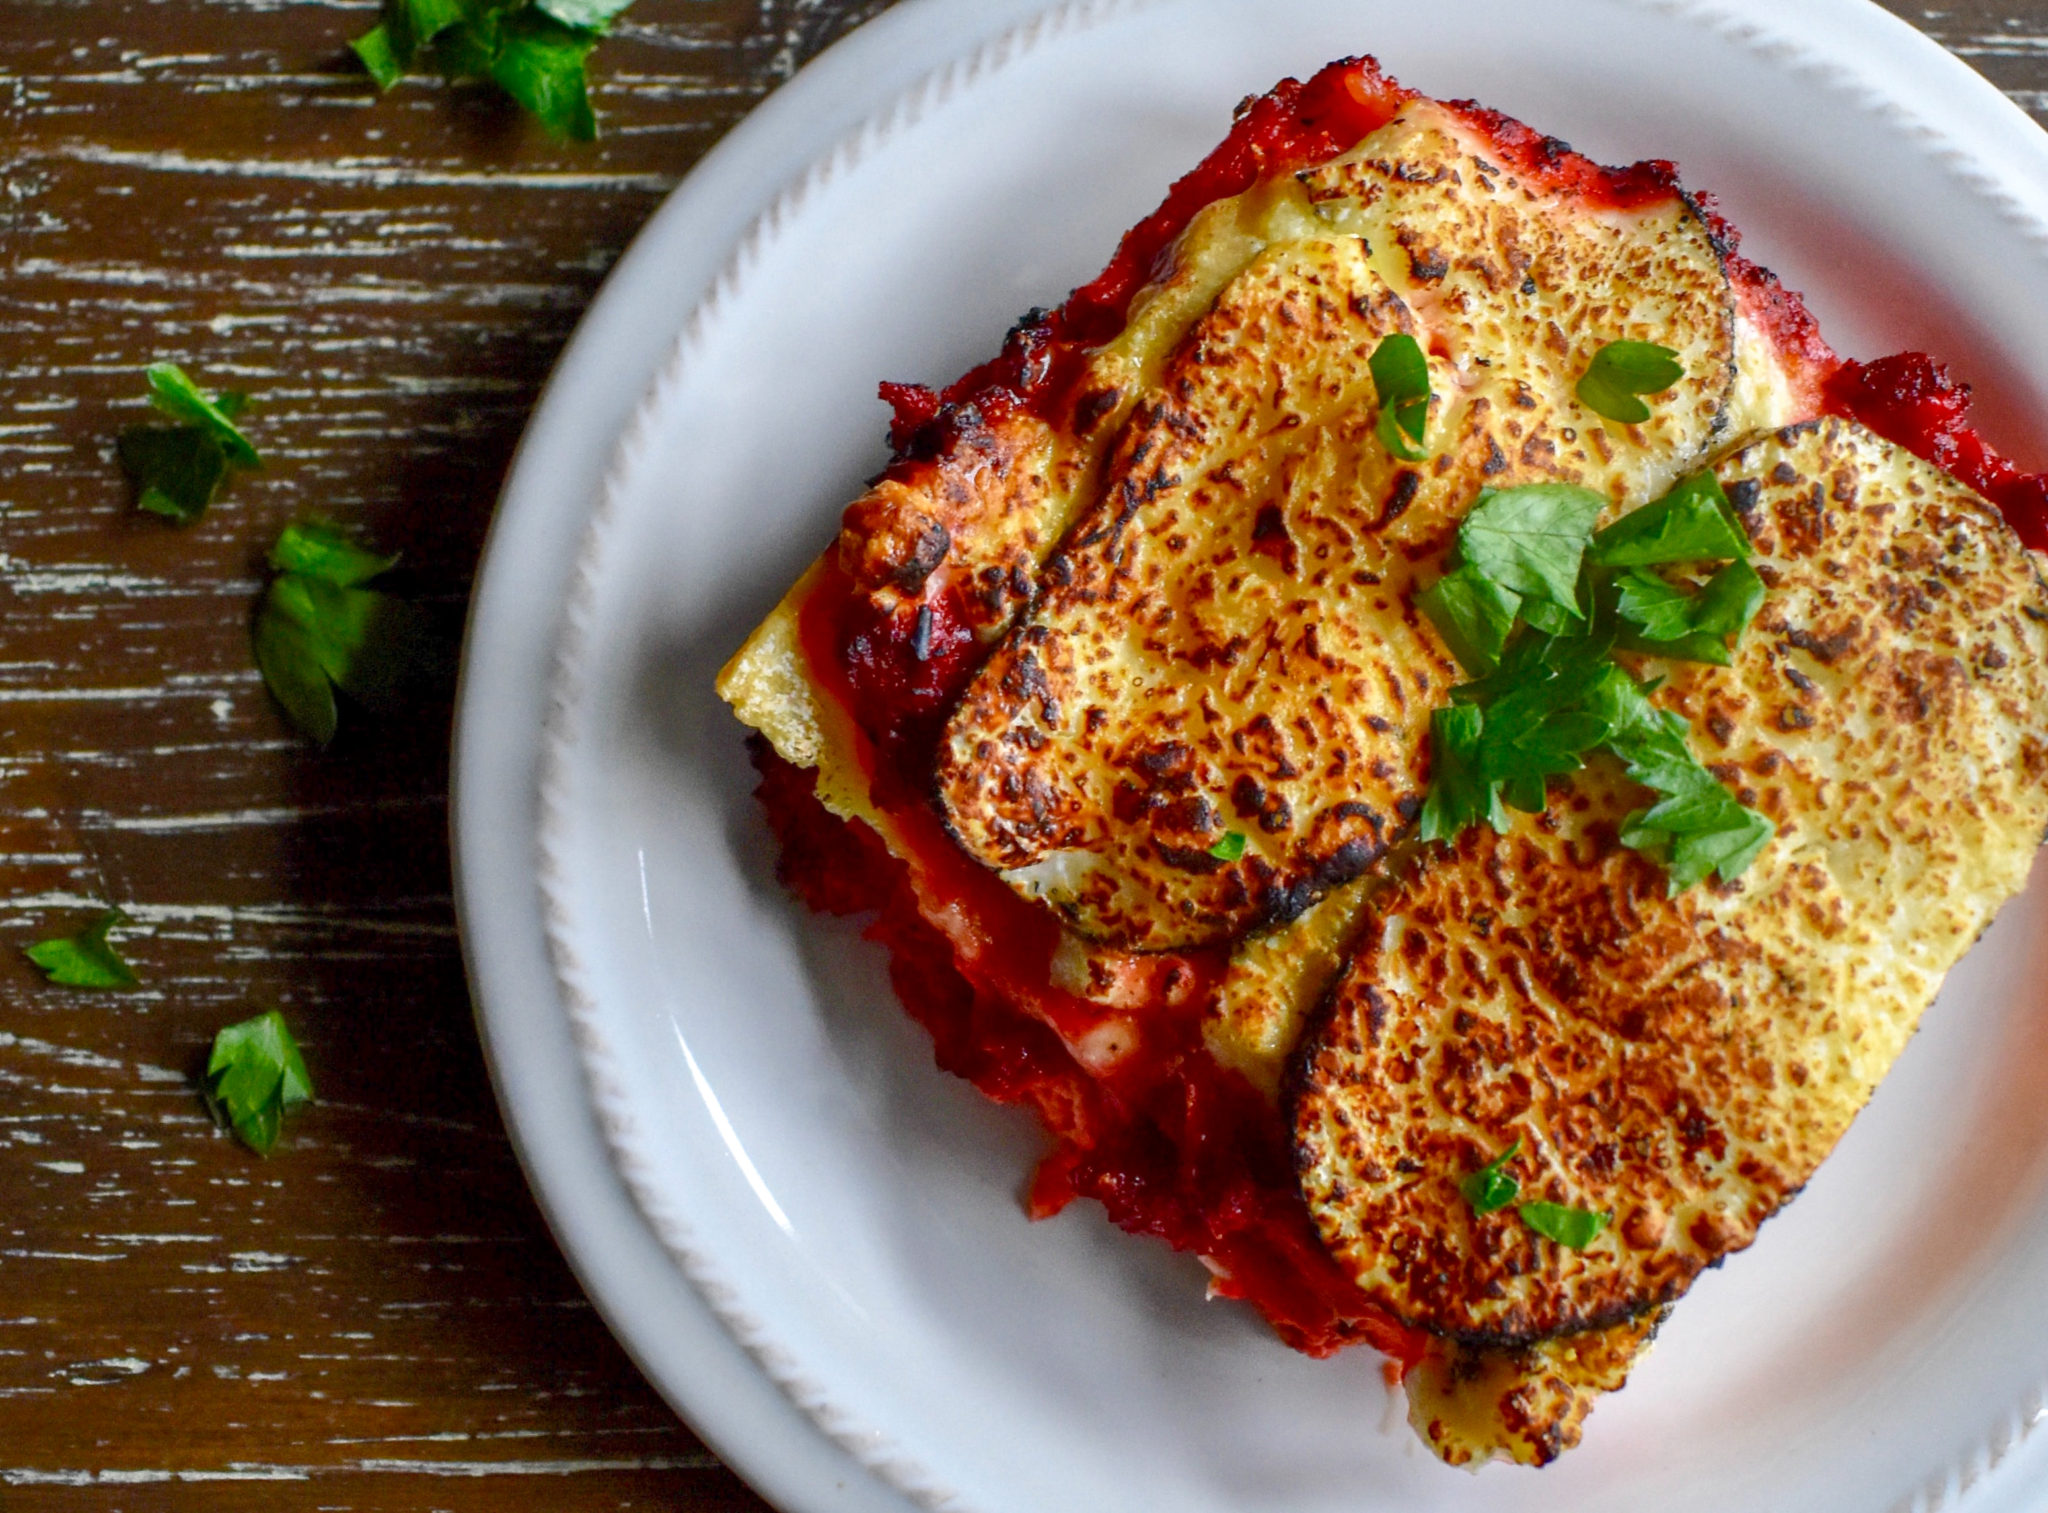 Eggplant and Cherry Tomato Bake (Meatless)